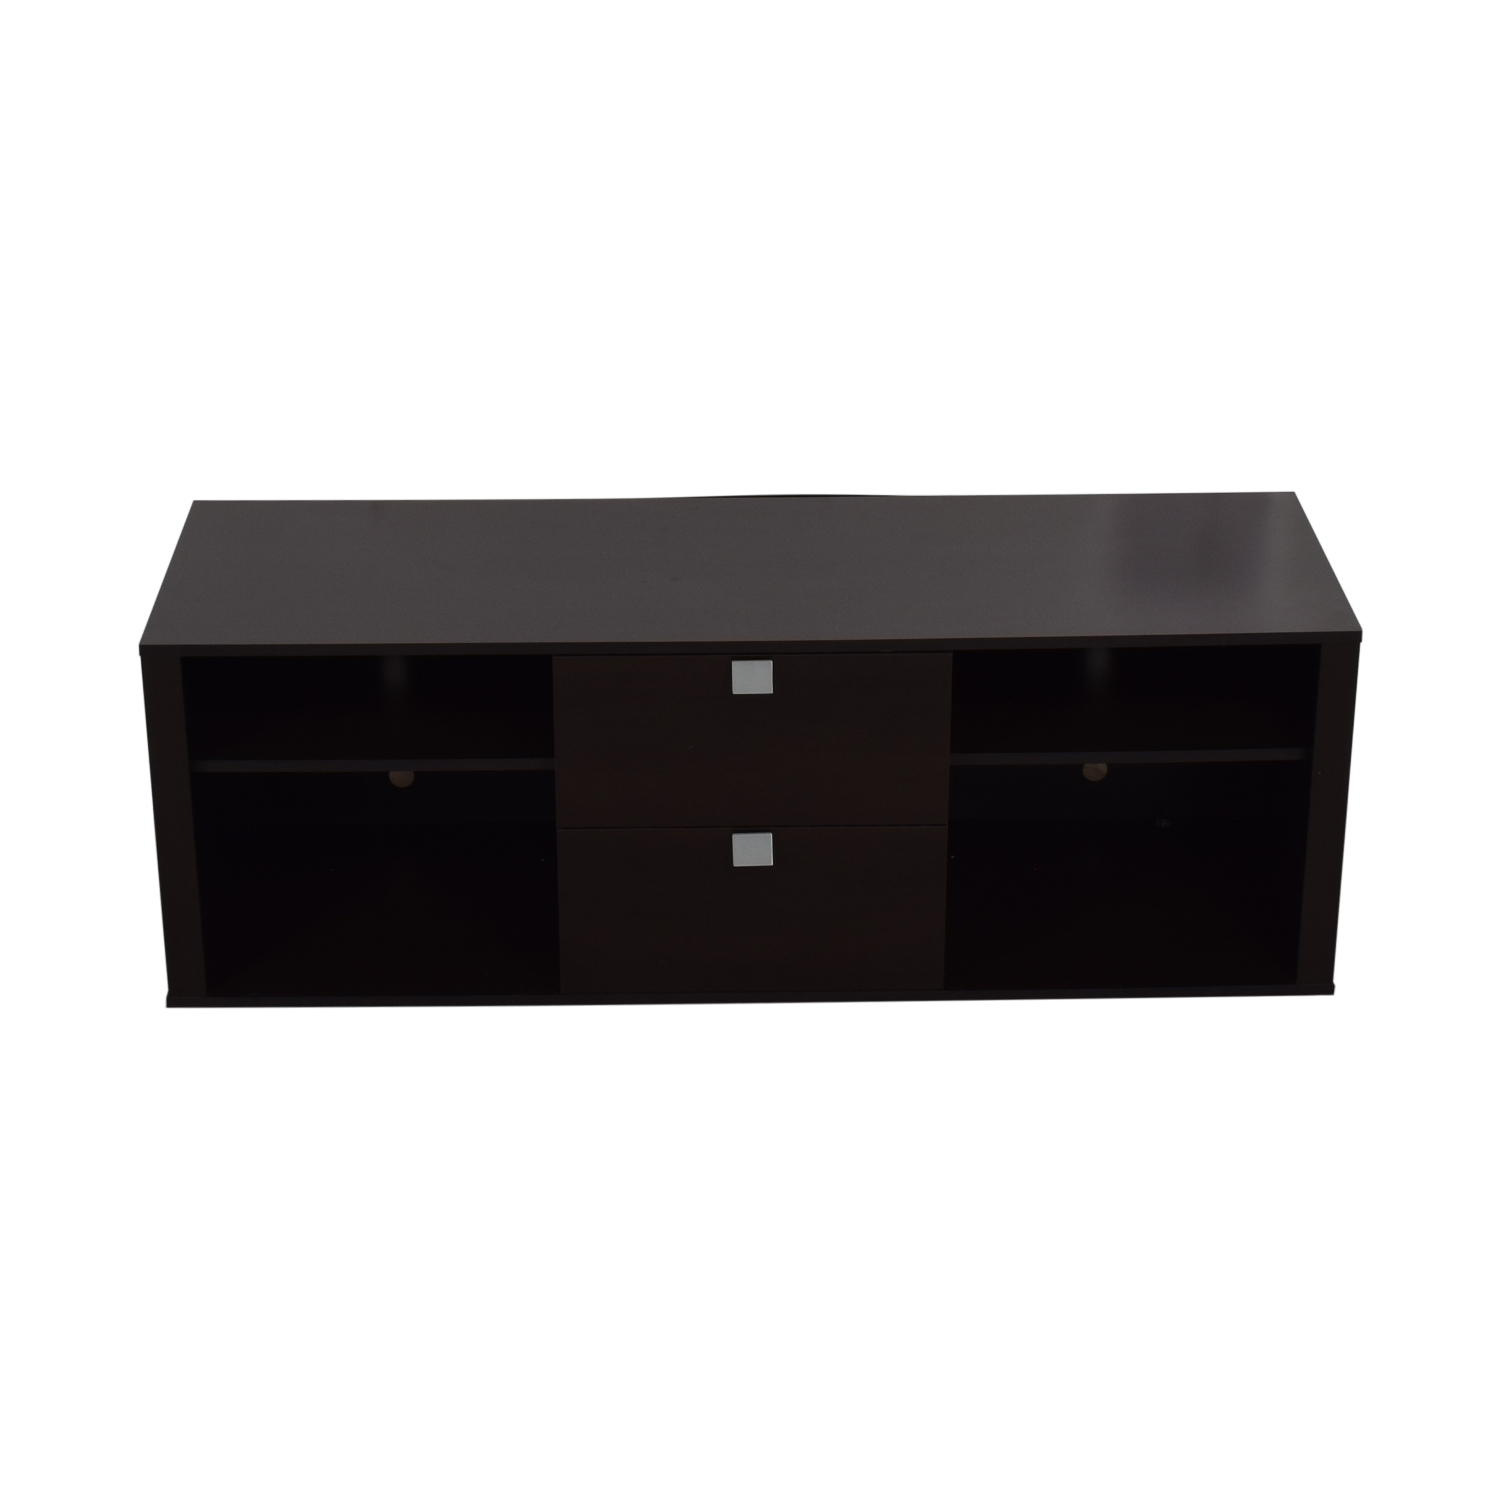 South Shore South Shore Two Drawer Media Unit price